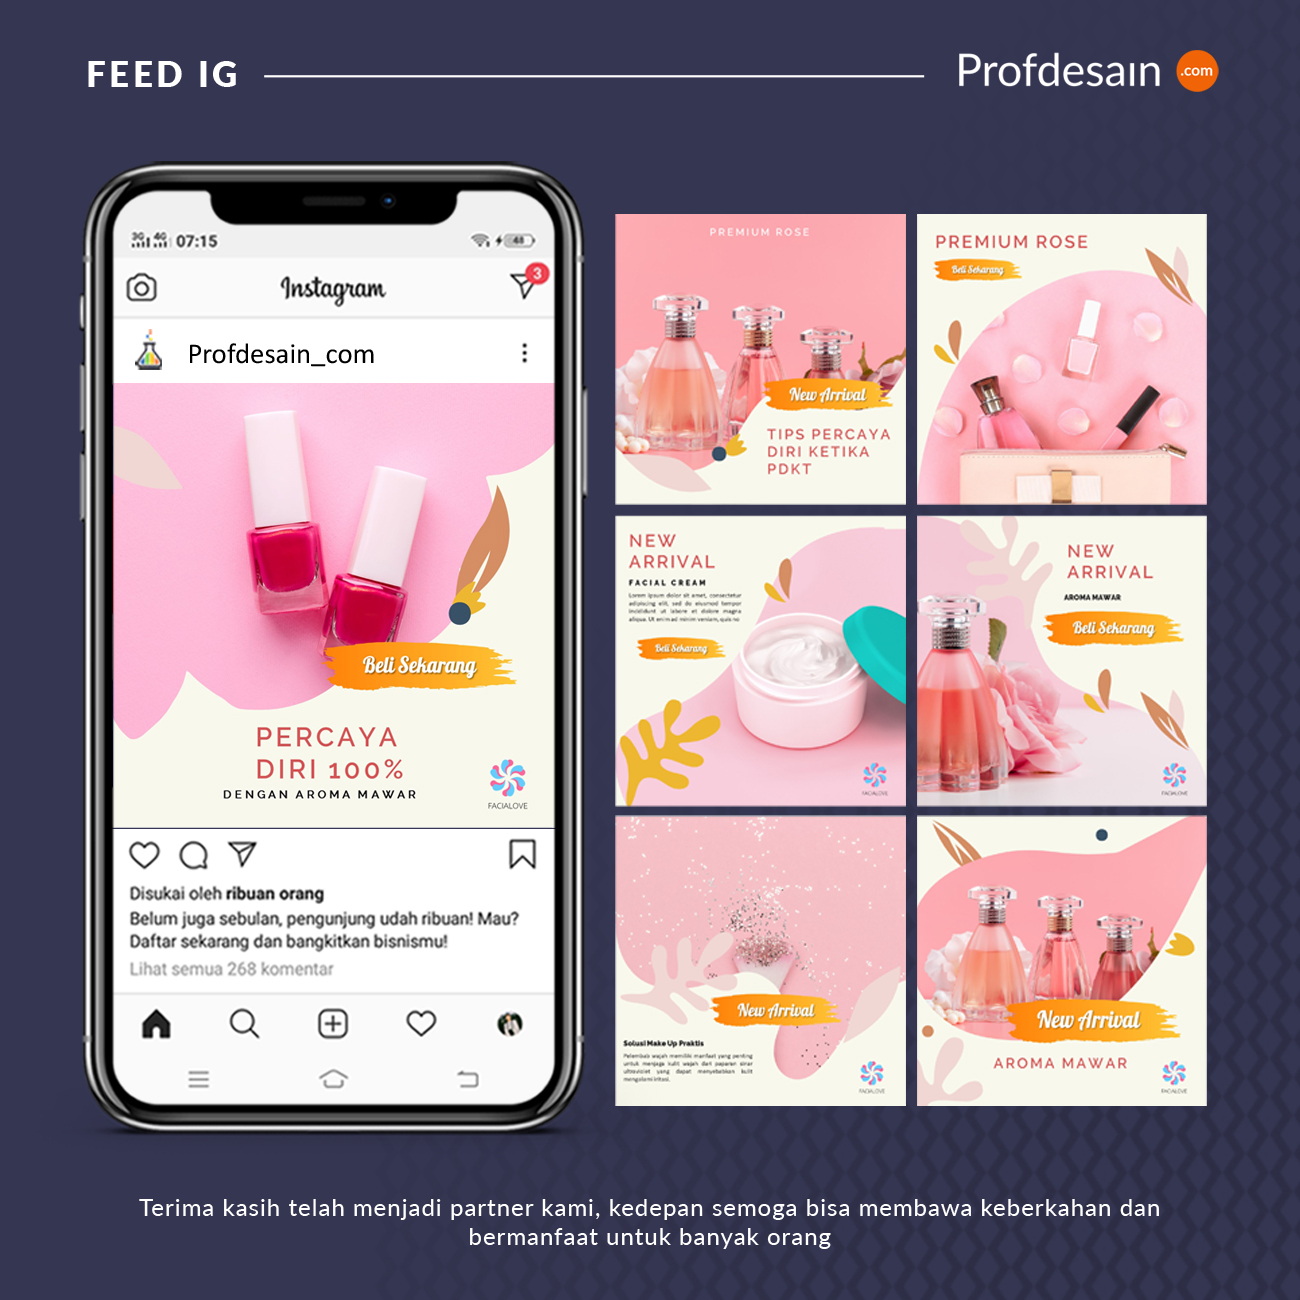 jasa desain feed instagram fashion n beauty 0